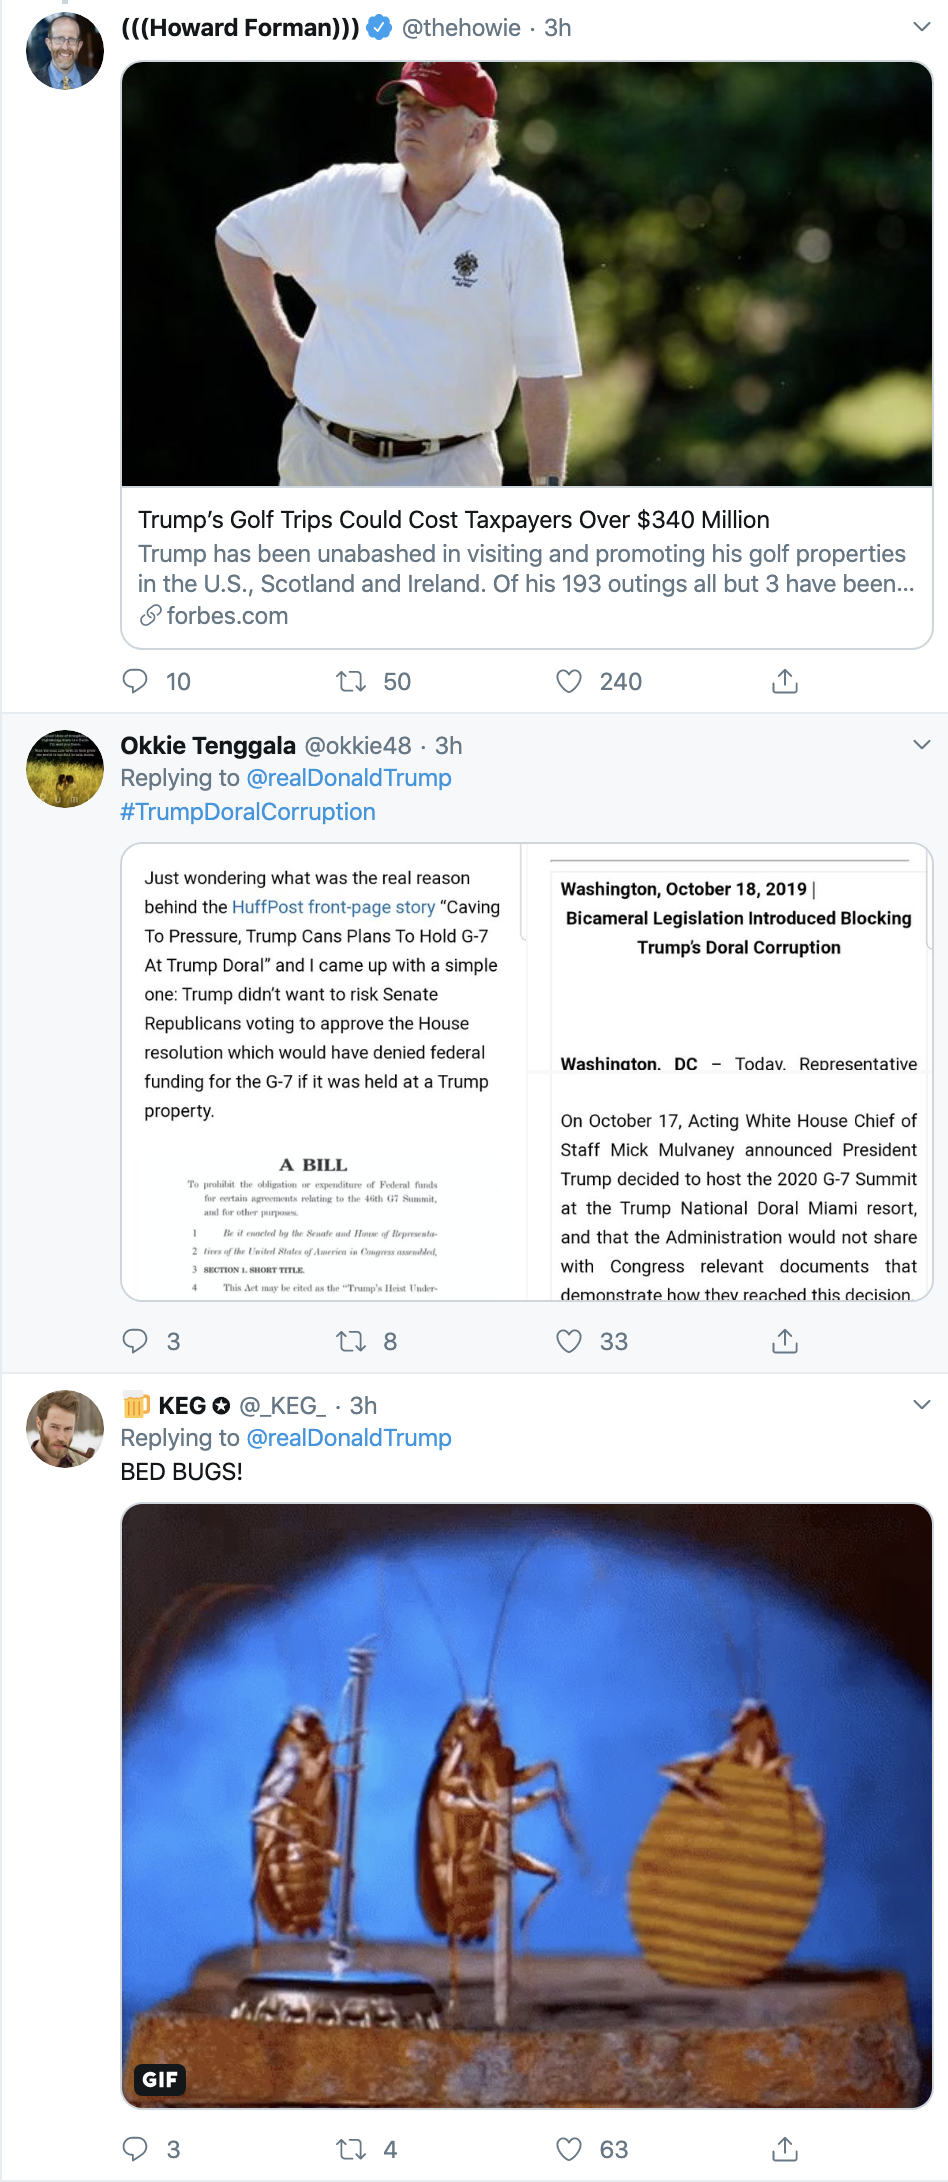 Screen-Shot-2019-10-21-at-12.16.19-PM Trump Is Whining About His Doral/G7 Idea Like It Was Smart Corruption Crime Domestic Policy Donald Trump Economy Election 2016 Election 2020 Featured Foreign Policy History Impeachment Investigation National Security Politics Top Stories